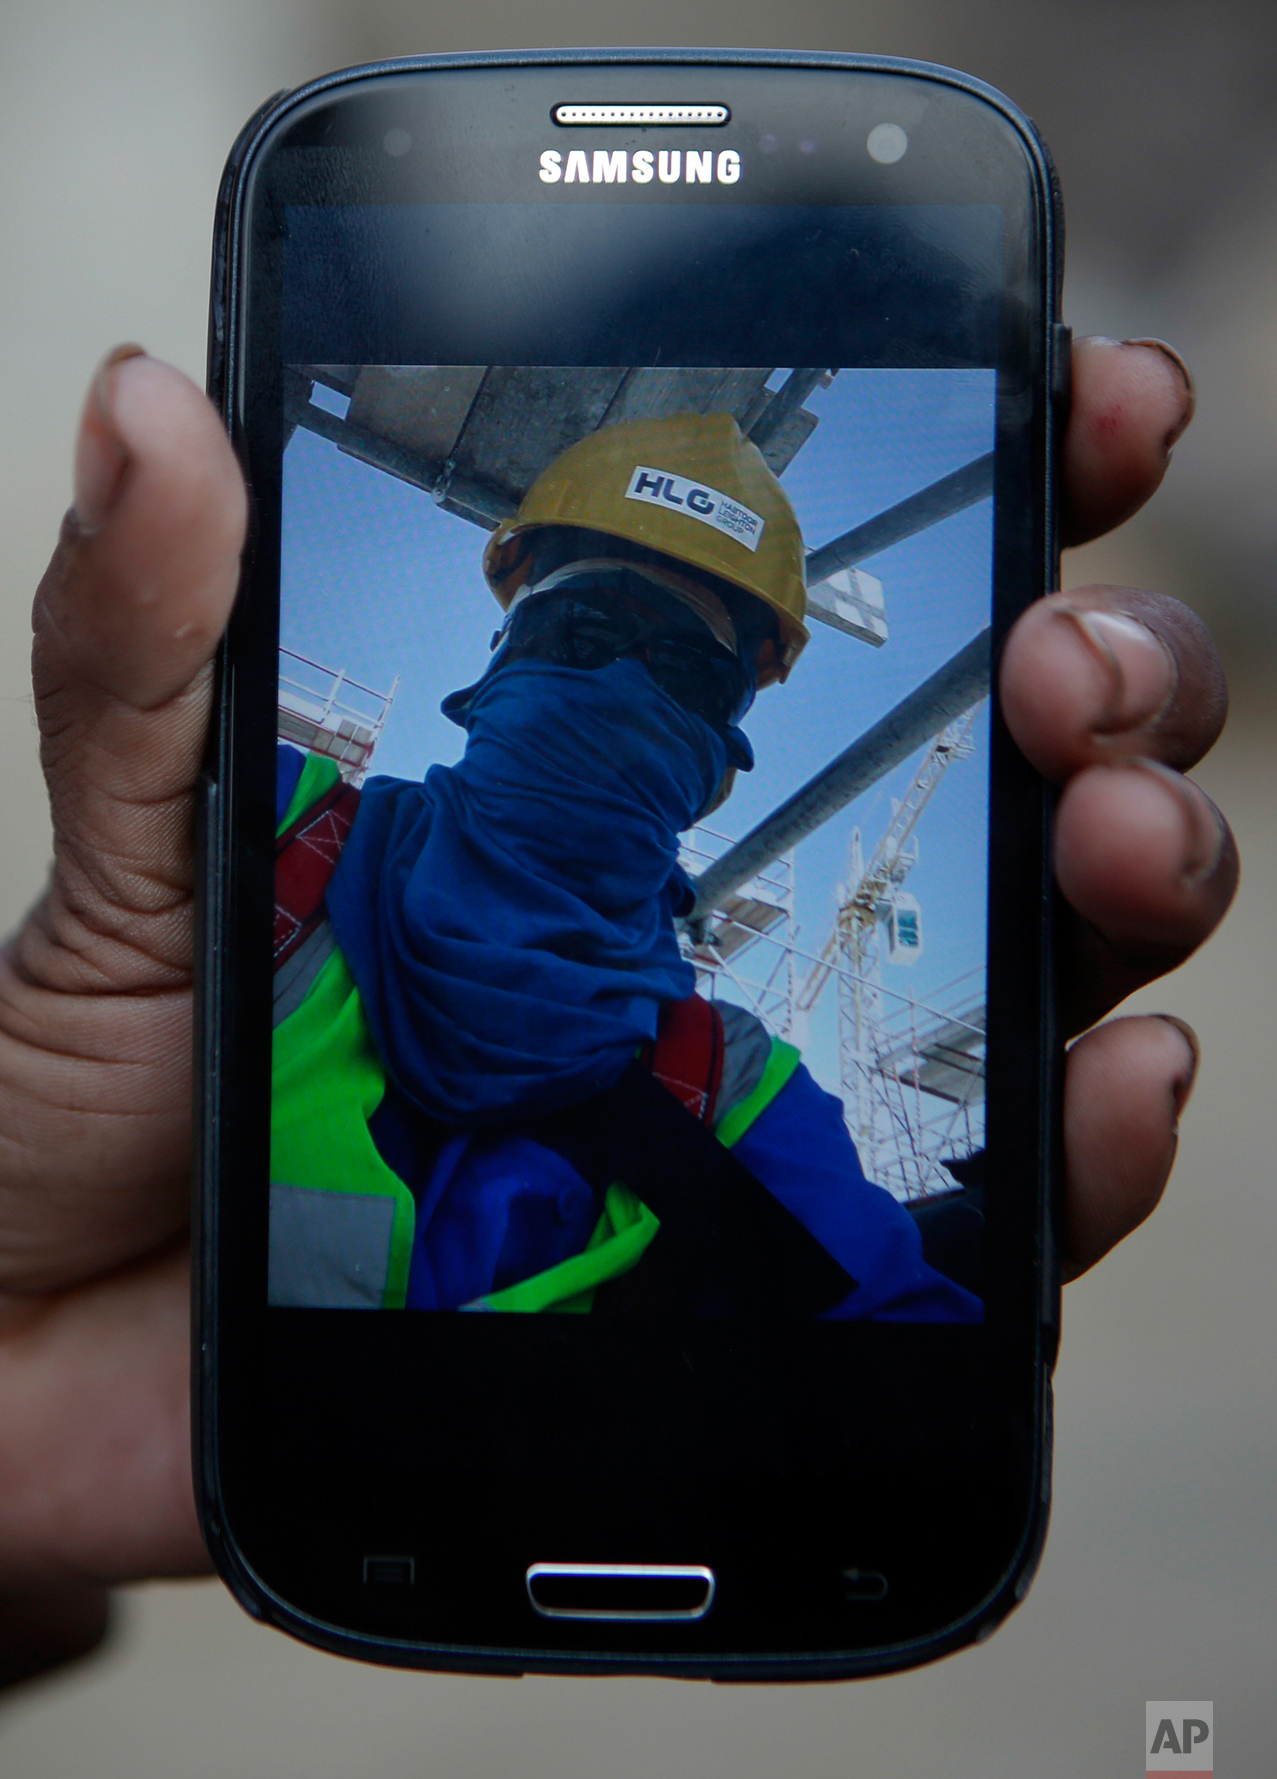 """In this Wednesday, Nov. 30, 2016, Saro Kumari Mandal, 26, holds a mobile phone displaying a selfie her husband Balkisun Mandal Khatwe had taken in Qatar in his yellow work hardhat and protective sunglasses, at her village in Belhi, Saptari District of Nepal. Saro had chatted with Balkisun through Facebook Messenger just the evening before his death. This is what happened, according to his supervisor: """"After work he went to dinner at 7 and bed at 10. In the morning we tried to wake him up but he didn't respond. We took the body to the hospital where they did an autopsy and said it was cardiac arrest."""" About 10 percent of Nepal's 28 million residents are working abroad. They send back more than $6 billion a year, amounting to about 30 percent of the country's annual revenues. Only Tajikistan and Kyrgyzstan are more dependent on foreign earnings. (AP Photo/Niranjan Shrestha)"""